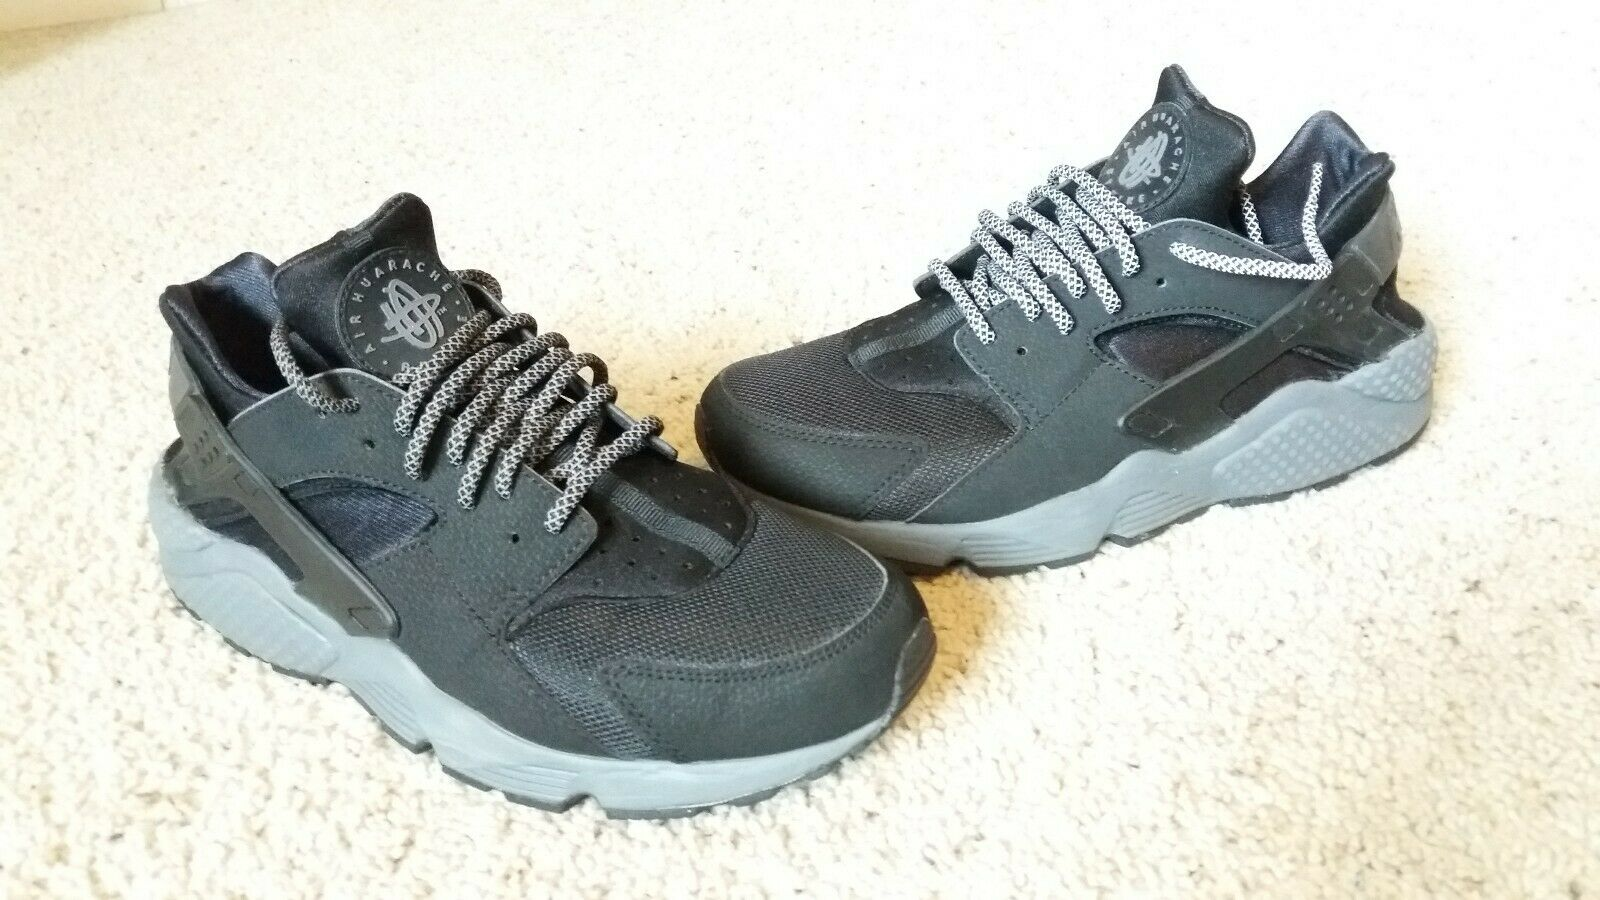 Nike Air Huarache Size 9.5 318429010 VNDS black and grey